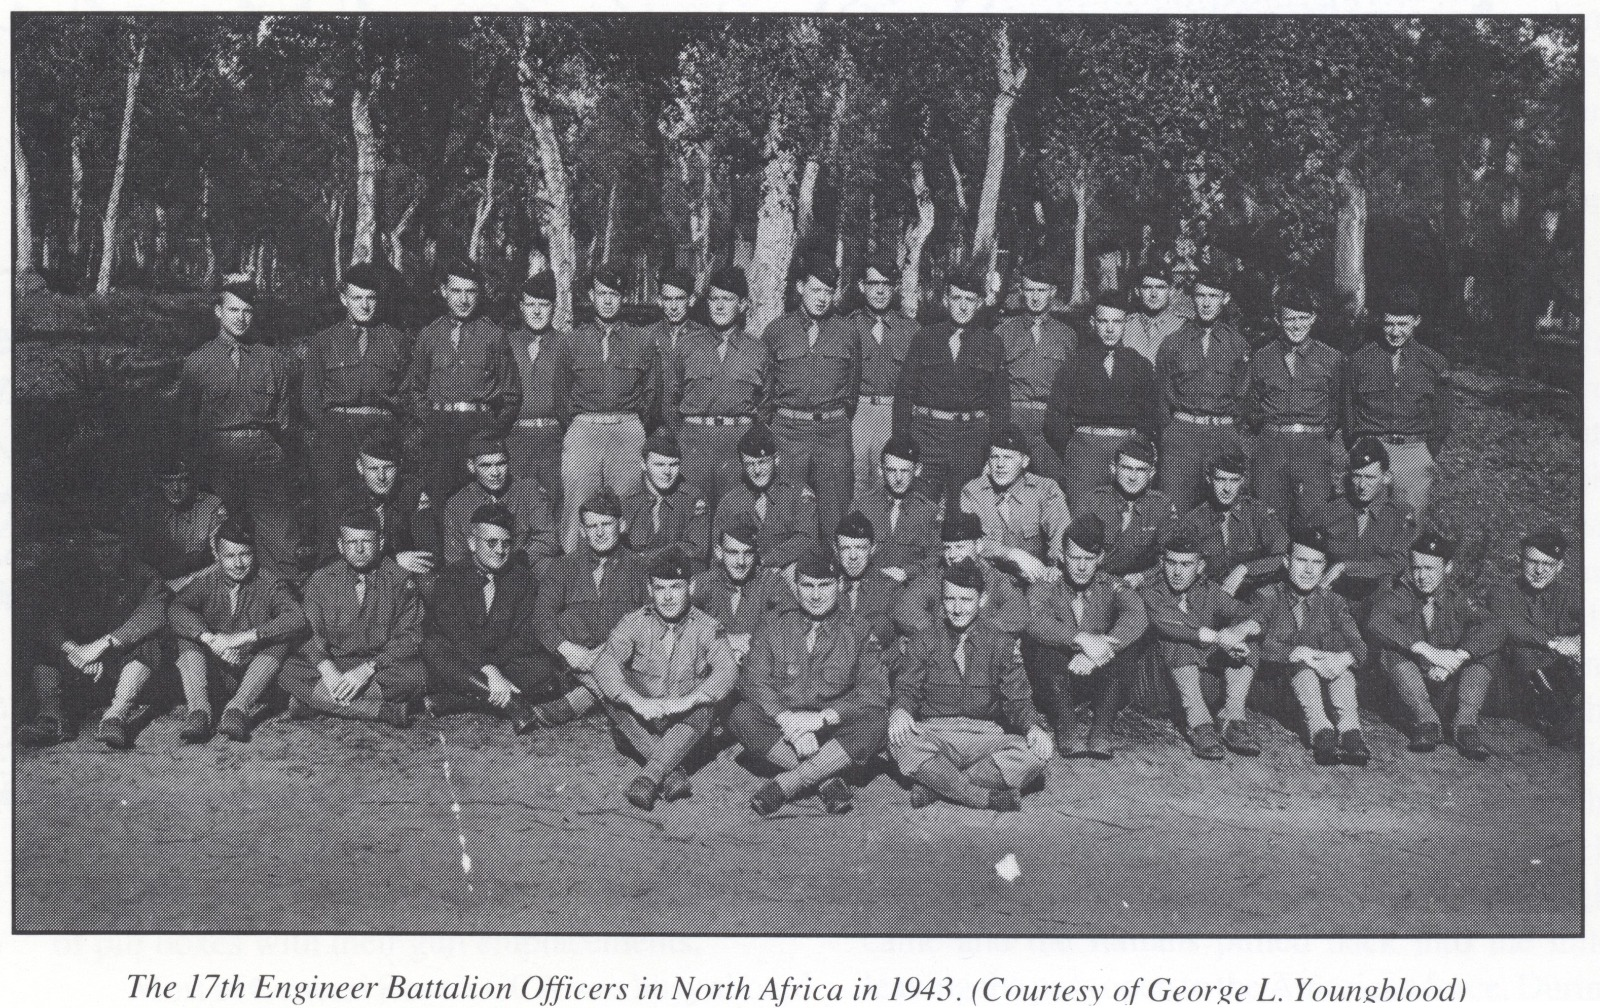 17th Engineer Battalion Officers in North Africa in 1943 (Courtesy of George L. Youngblood)